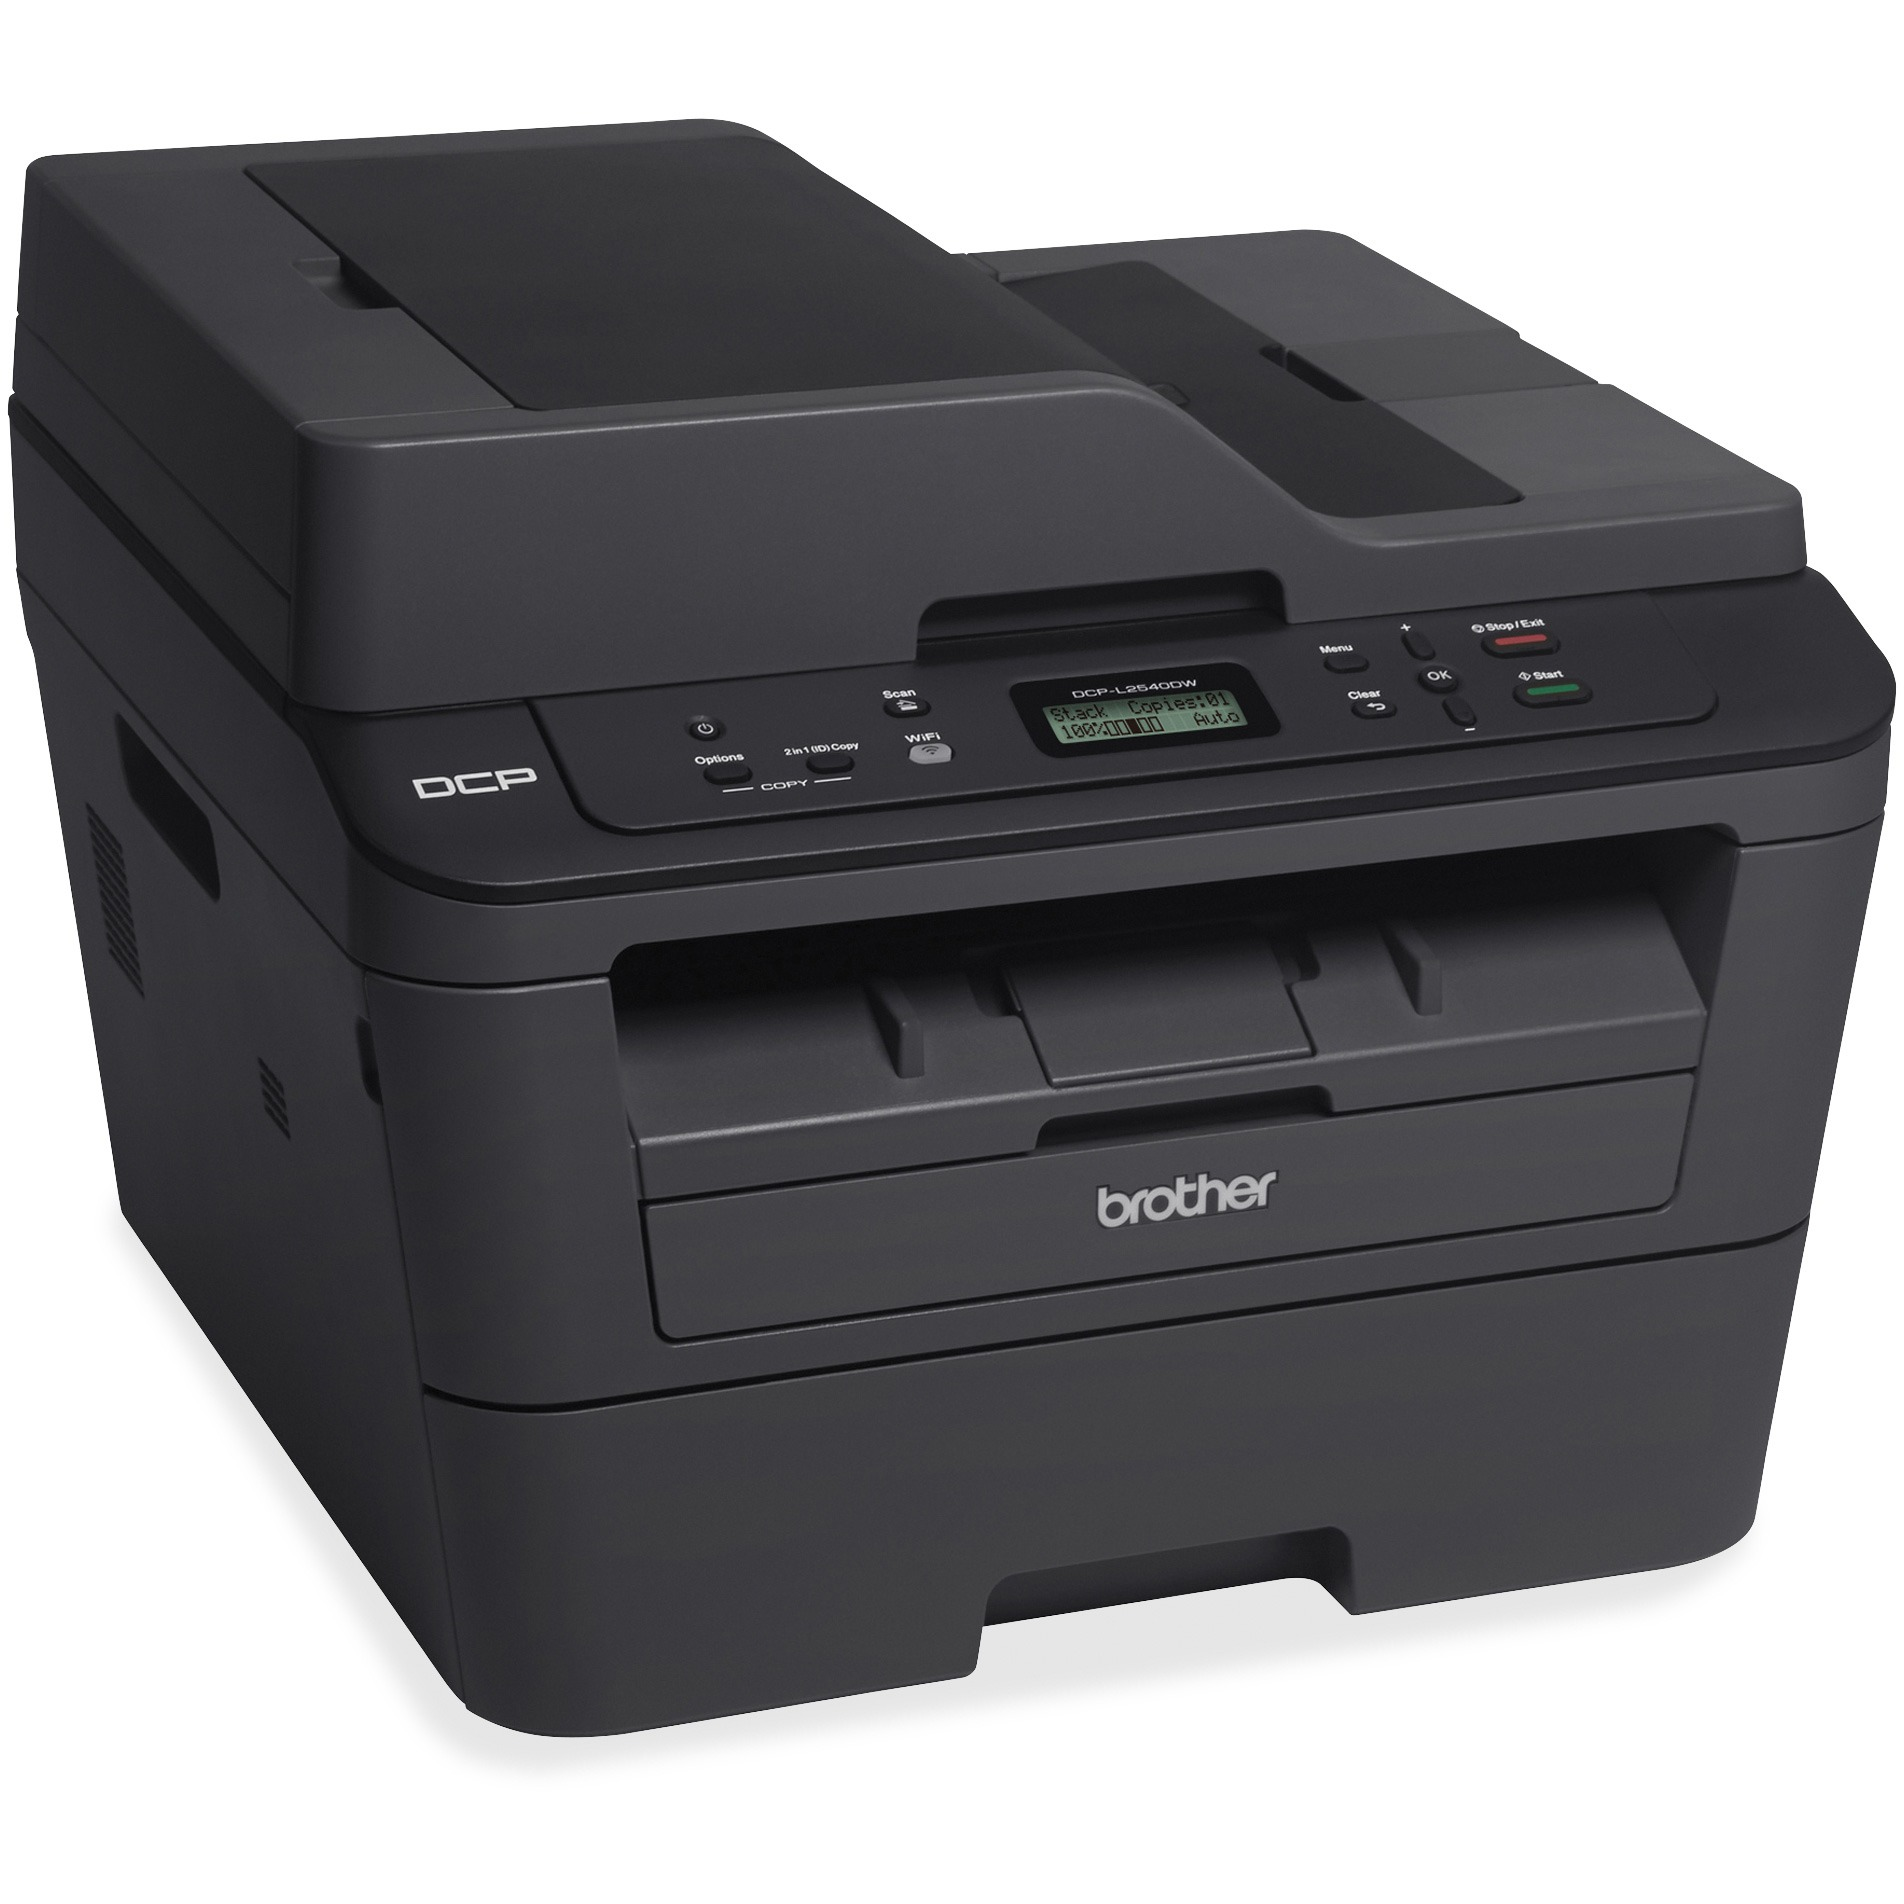 Brother, BRTDCPL2540DW, DCPL2540DW MFP Compact Laser Copier, 1 Each